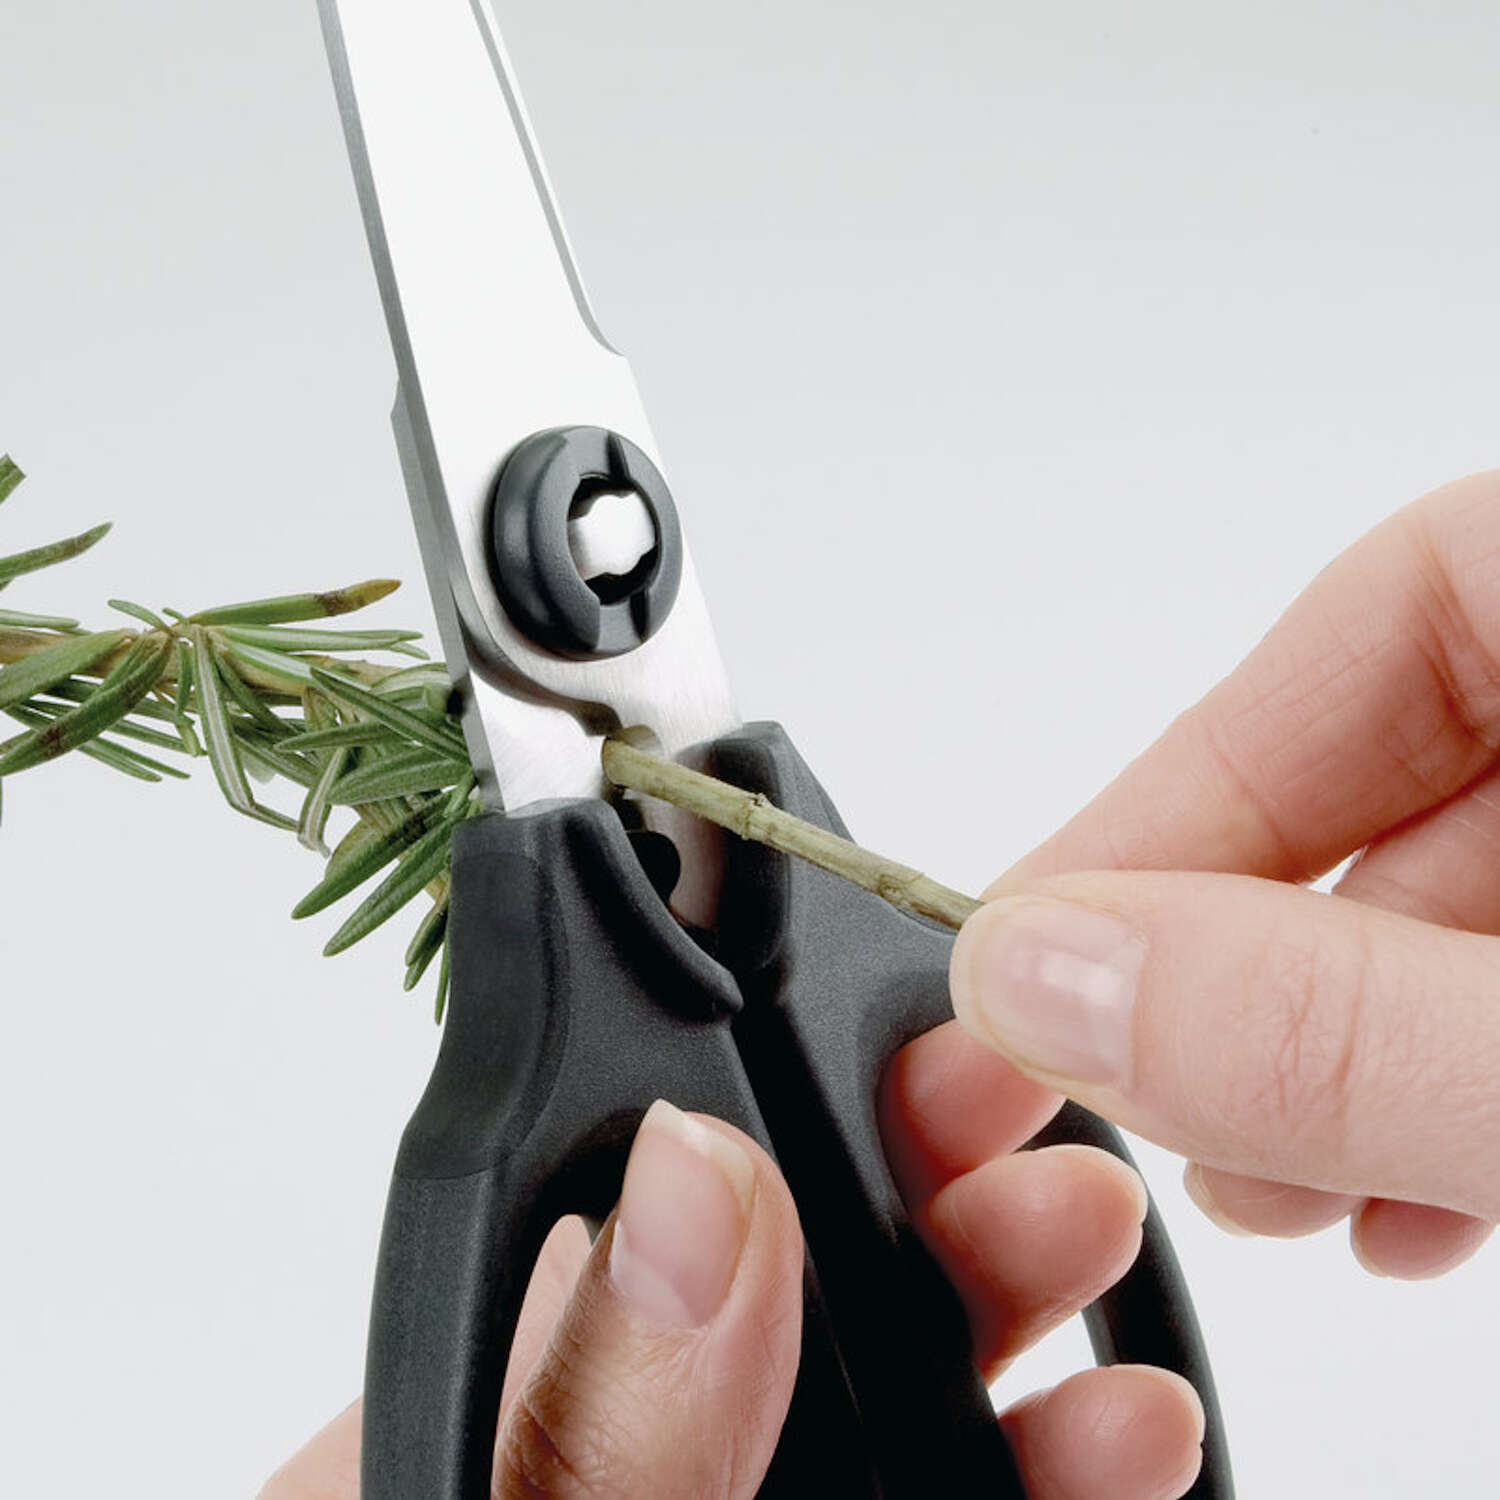 OXO  Good Grips  Stainless Steel  Kitchen Scissors  1 pc.